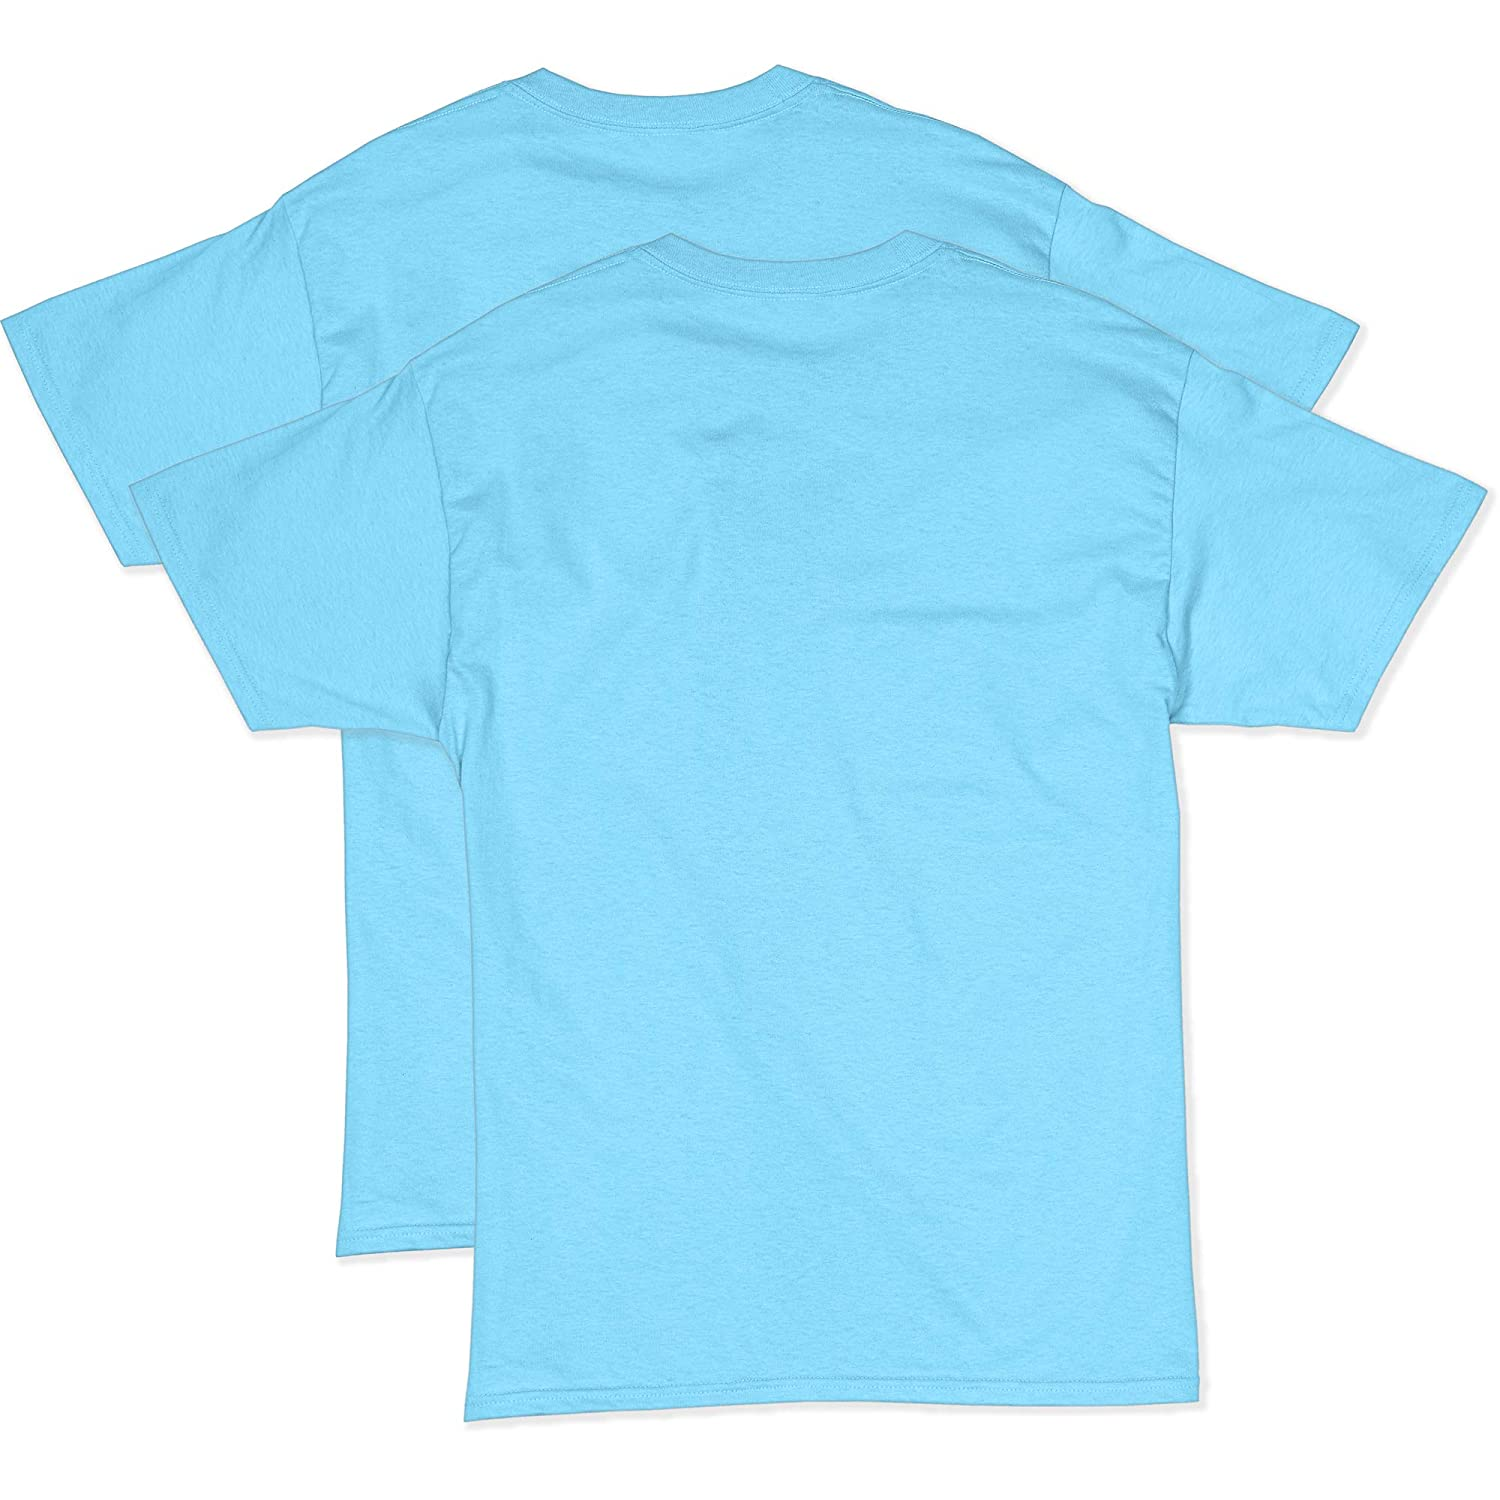 06137747e86ce Hanes Men s 2 Pack X-Temp Performance T-Shirt at Amazon Men s Clothing  store